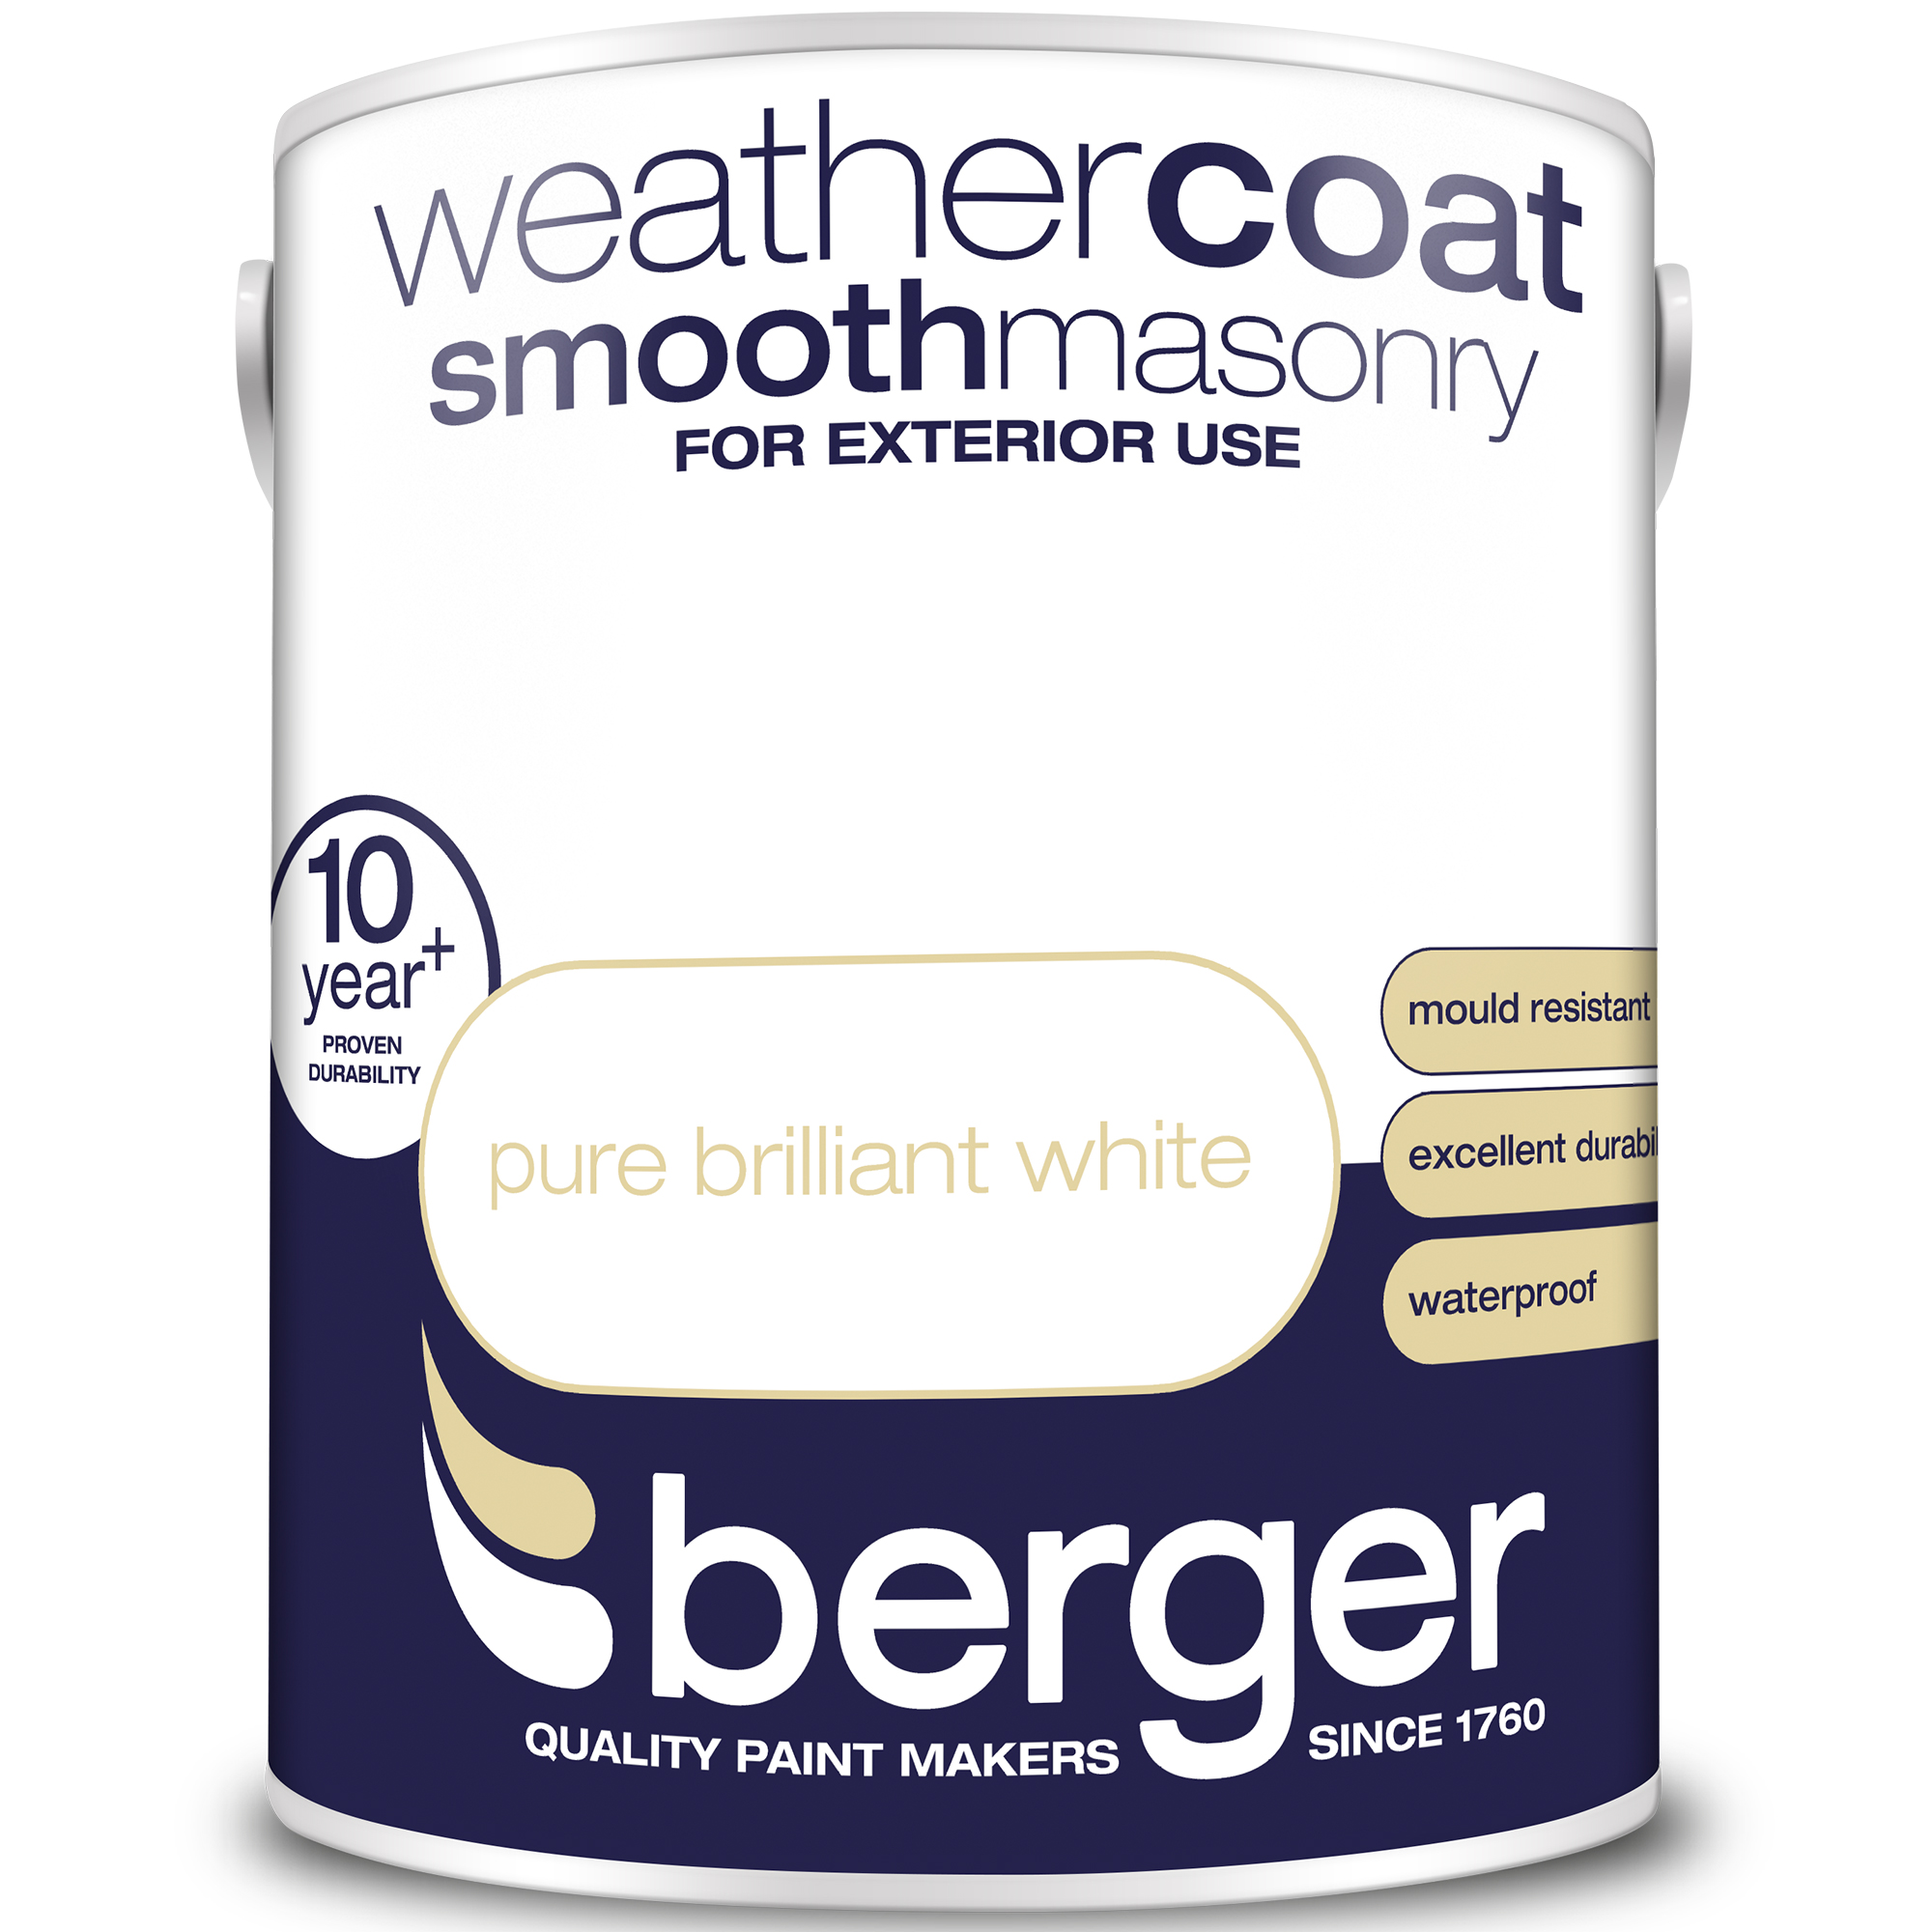 Berger Weather Coat Exterior Smooth Emulsion Paint